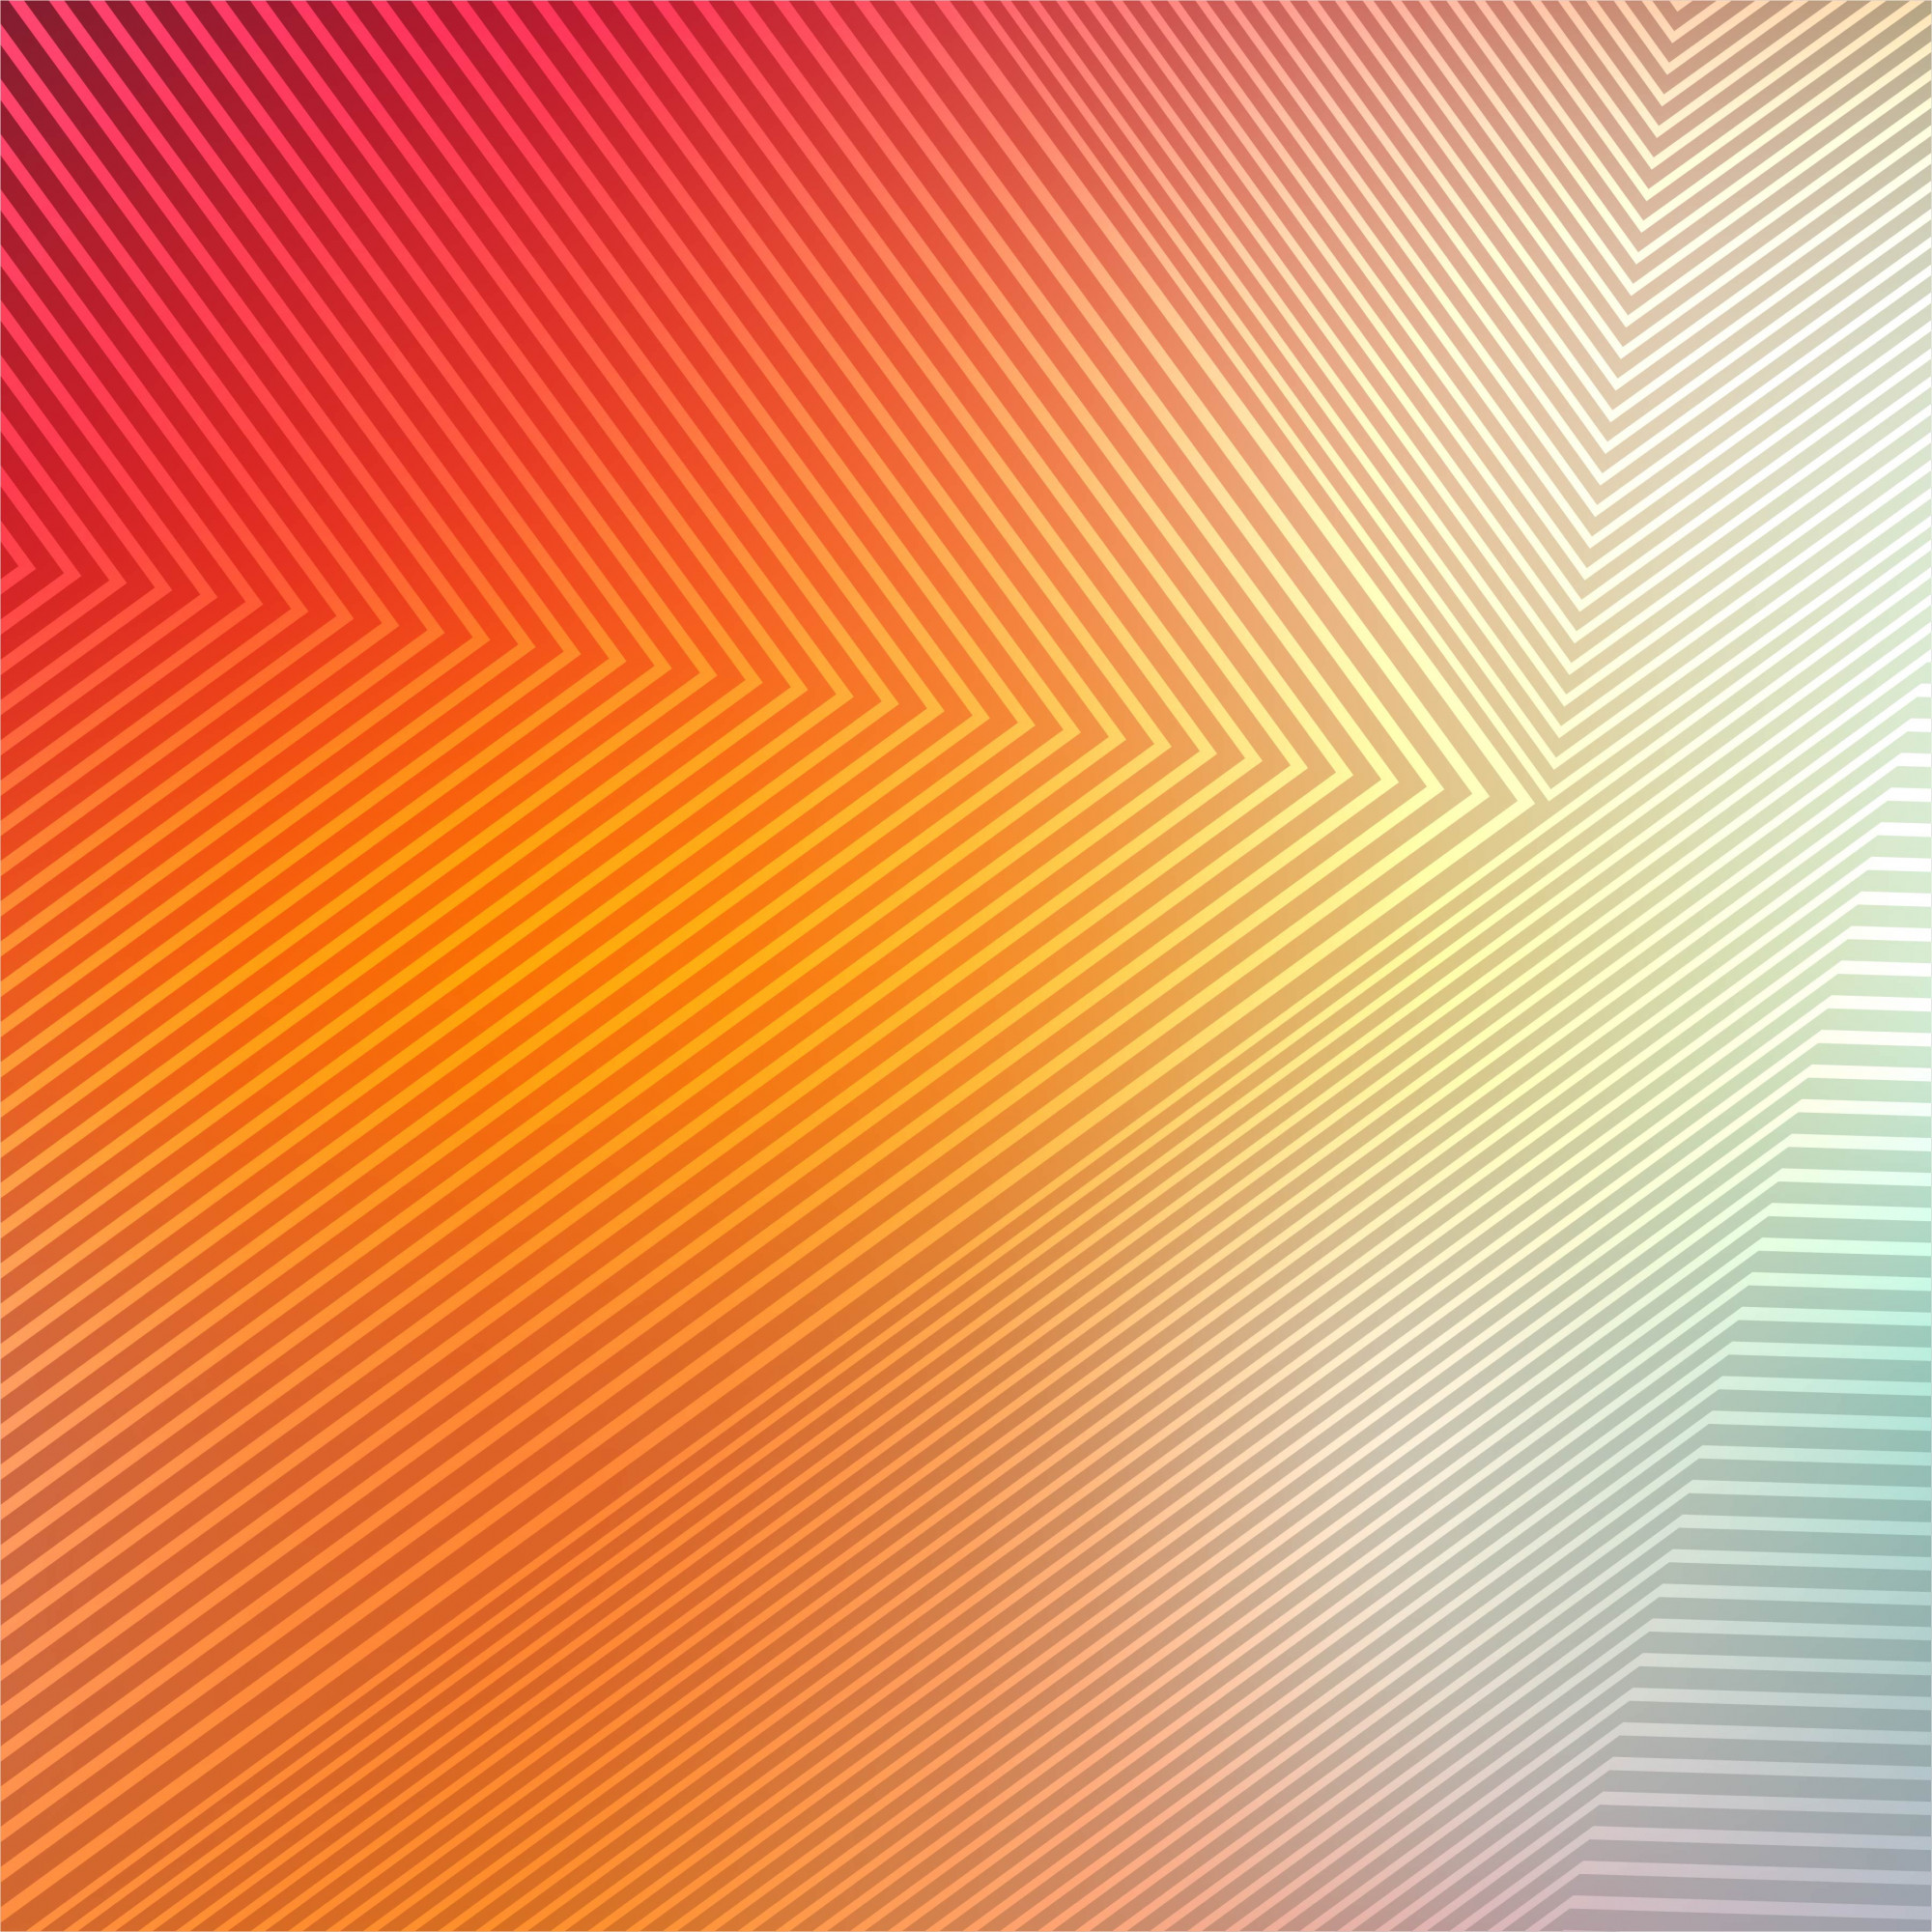 Abstract colorful geometric lines background